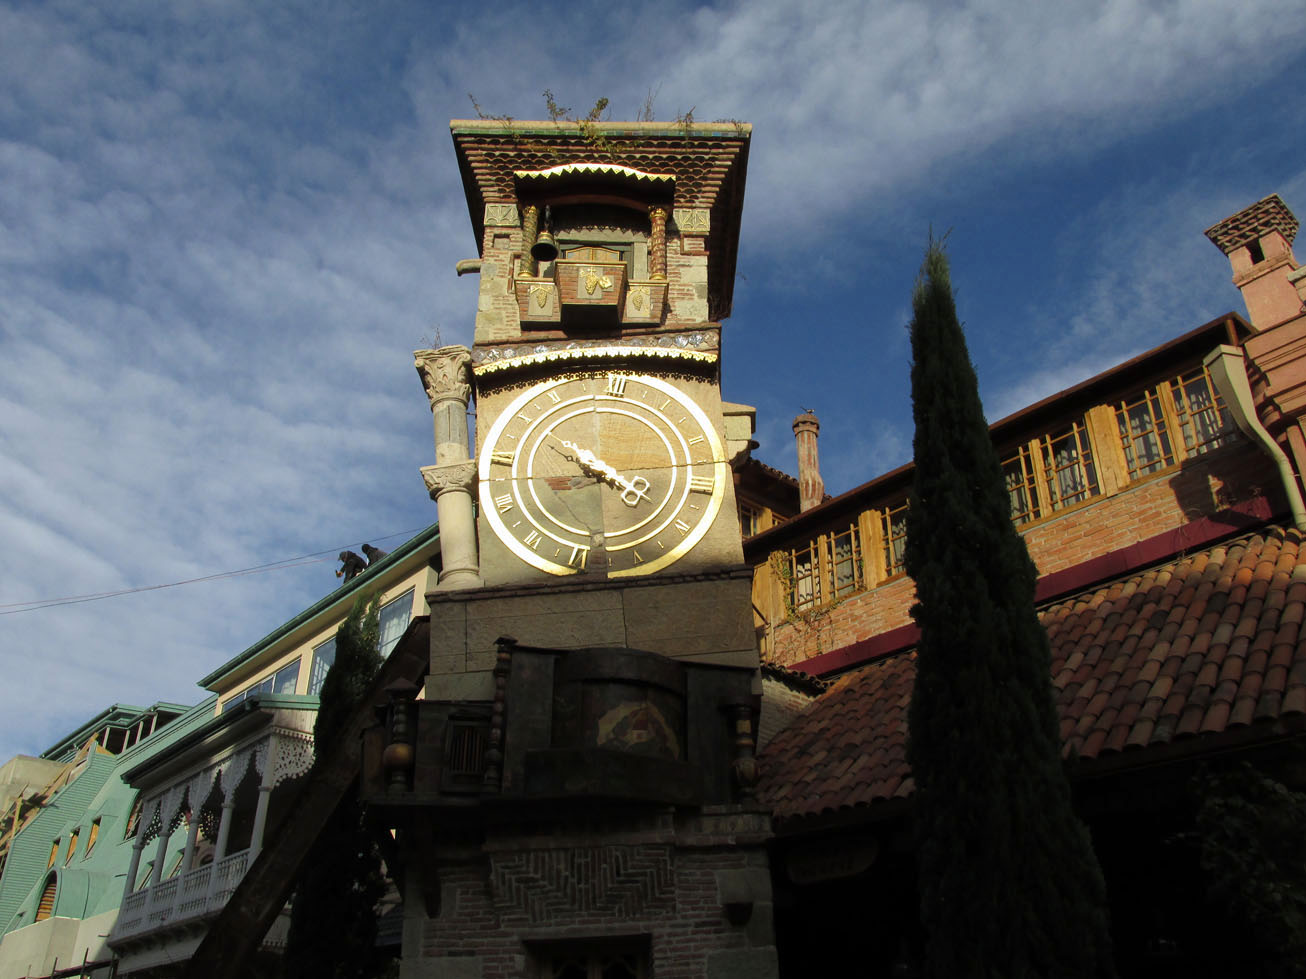 Tbilisi's puppet theater